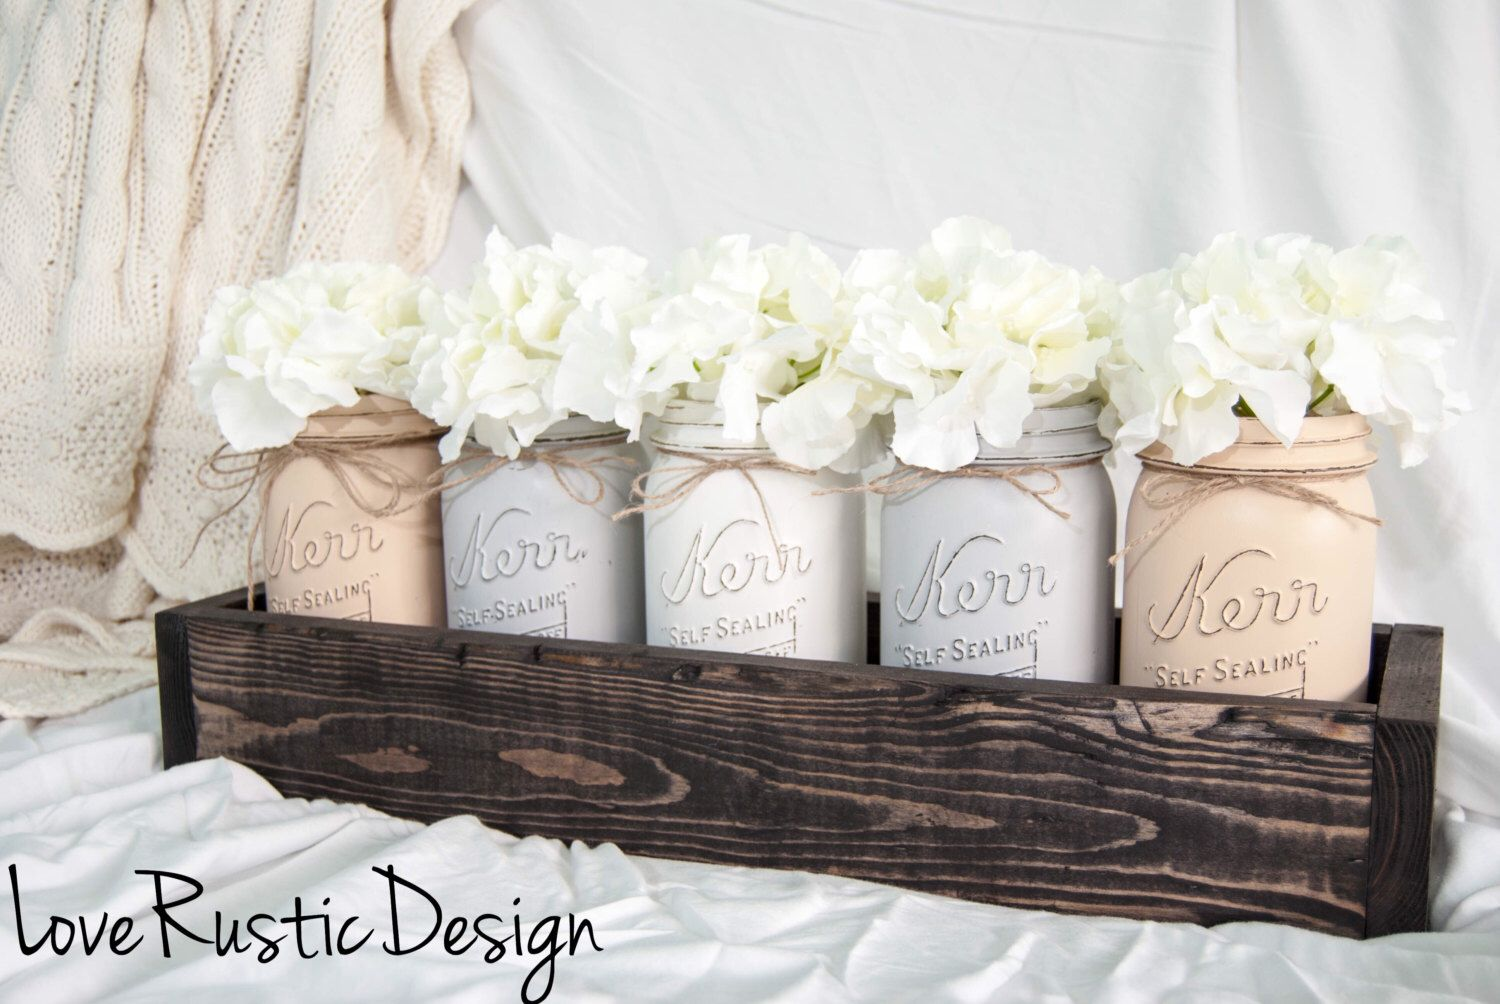 5 Neutral Toned Mason Jar Centerpiece in Rustic Planter, Rustic Home Decor, Mason Jar Decor, Rustic Decor, Canada, Country Decor by LoveRusticDesign on Etsy https://www.etsy.com/listing/477431146/5-neutral-toned-mason-jar-centerpiece-in